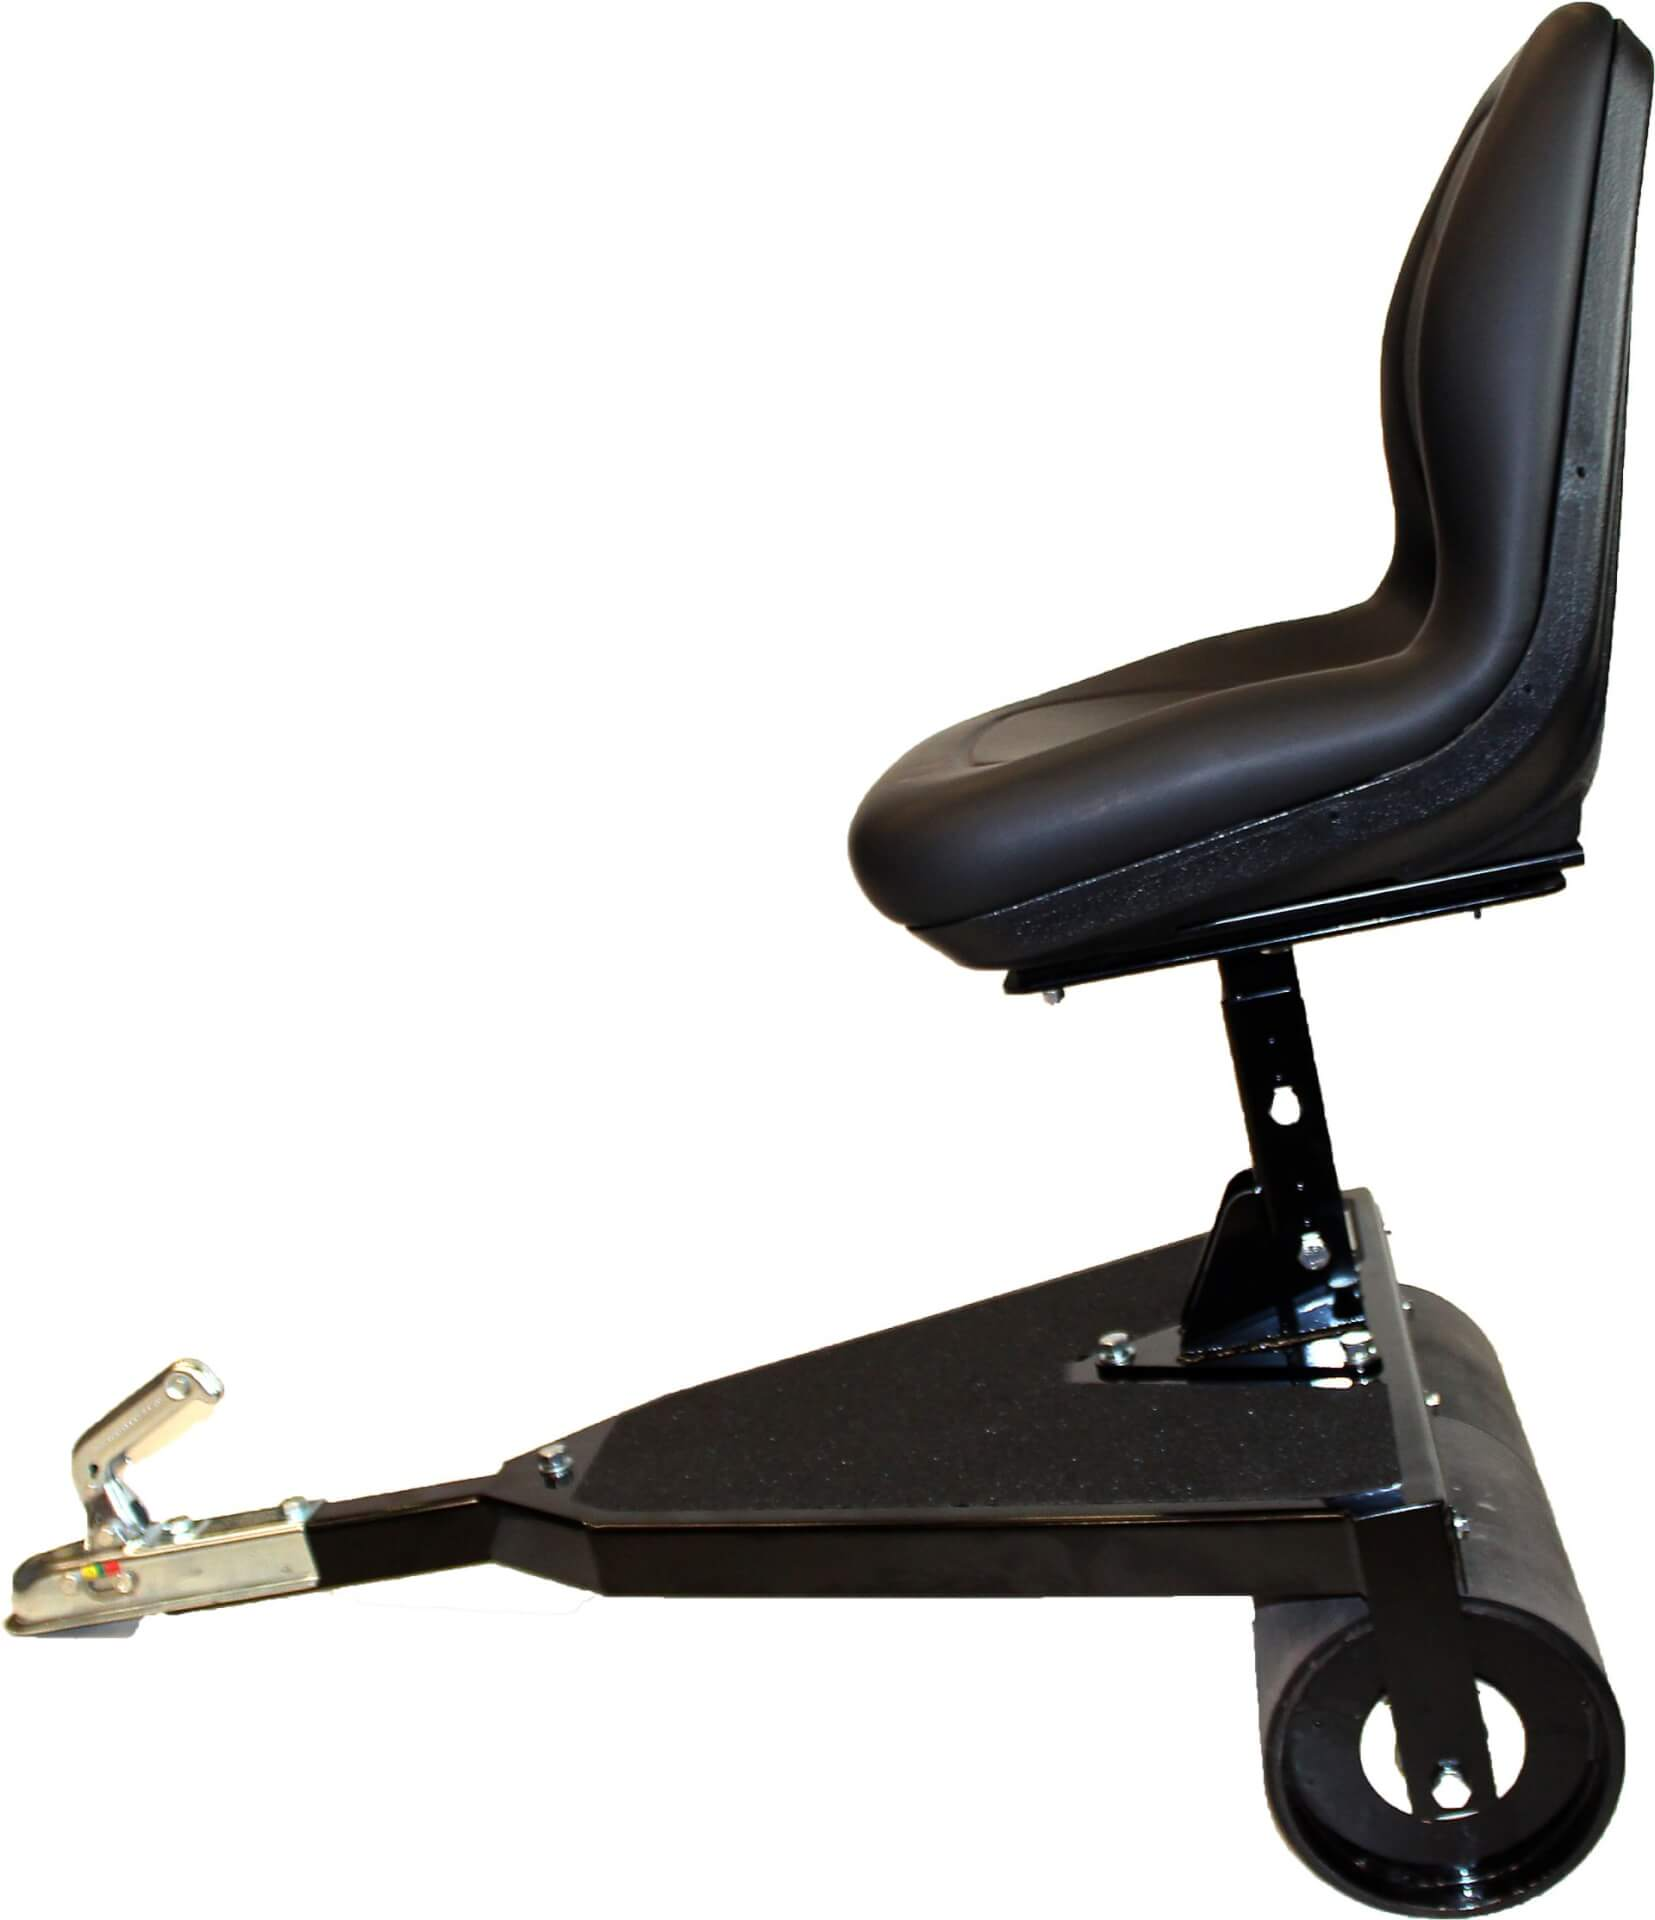 ALLETT TS00/1 Trailing Seat (Regal, Buffalo 34, C34 & 27)